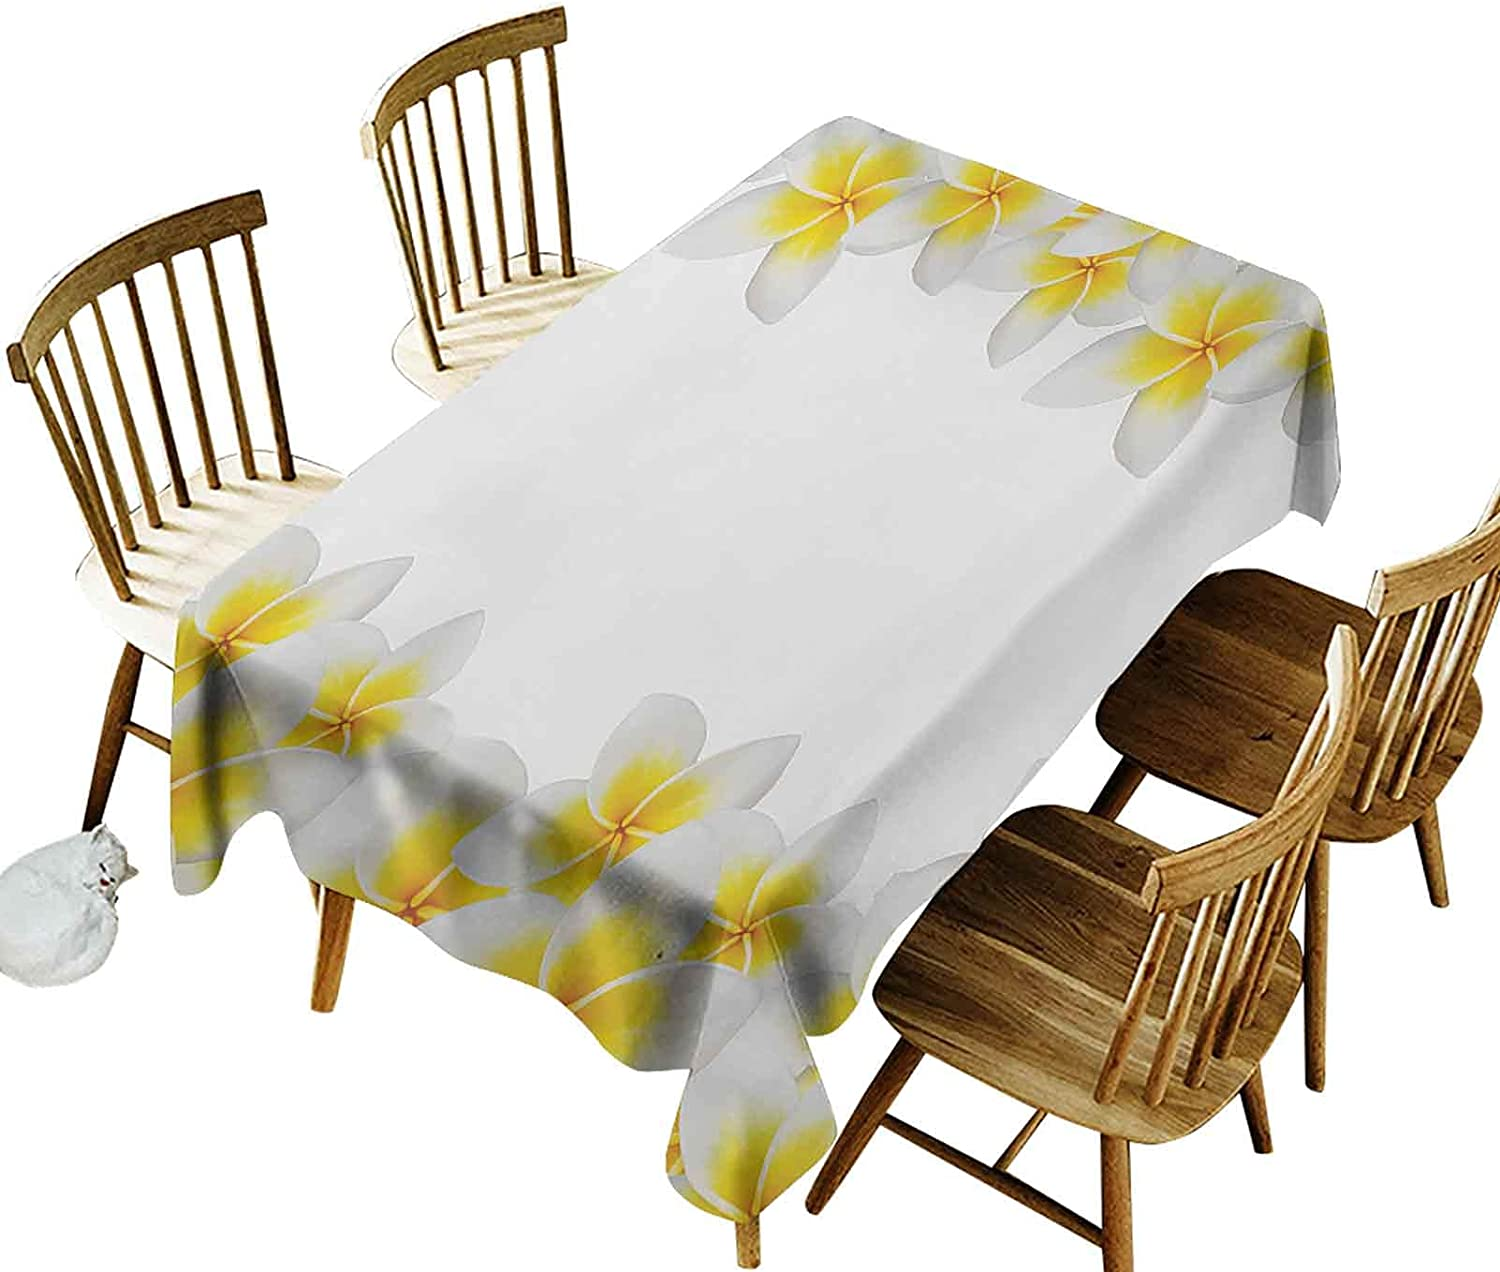 Rectangle Tablecloth,Frangipani Blossoms Exotic Nature Garden Plumeria Flower Frame Relaxation Theme, Non-Fade Washable Table Cover(Oblong 60 x 120 Inch(10-12 Seats) for Outdoor and Indoor Use